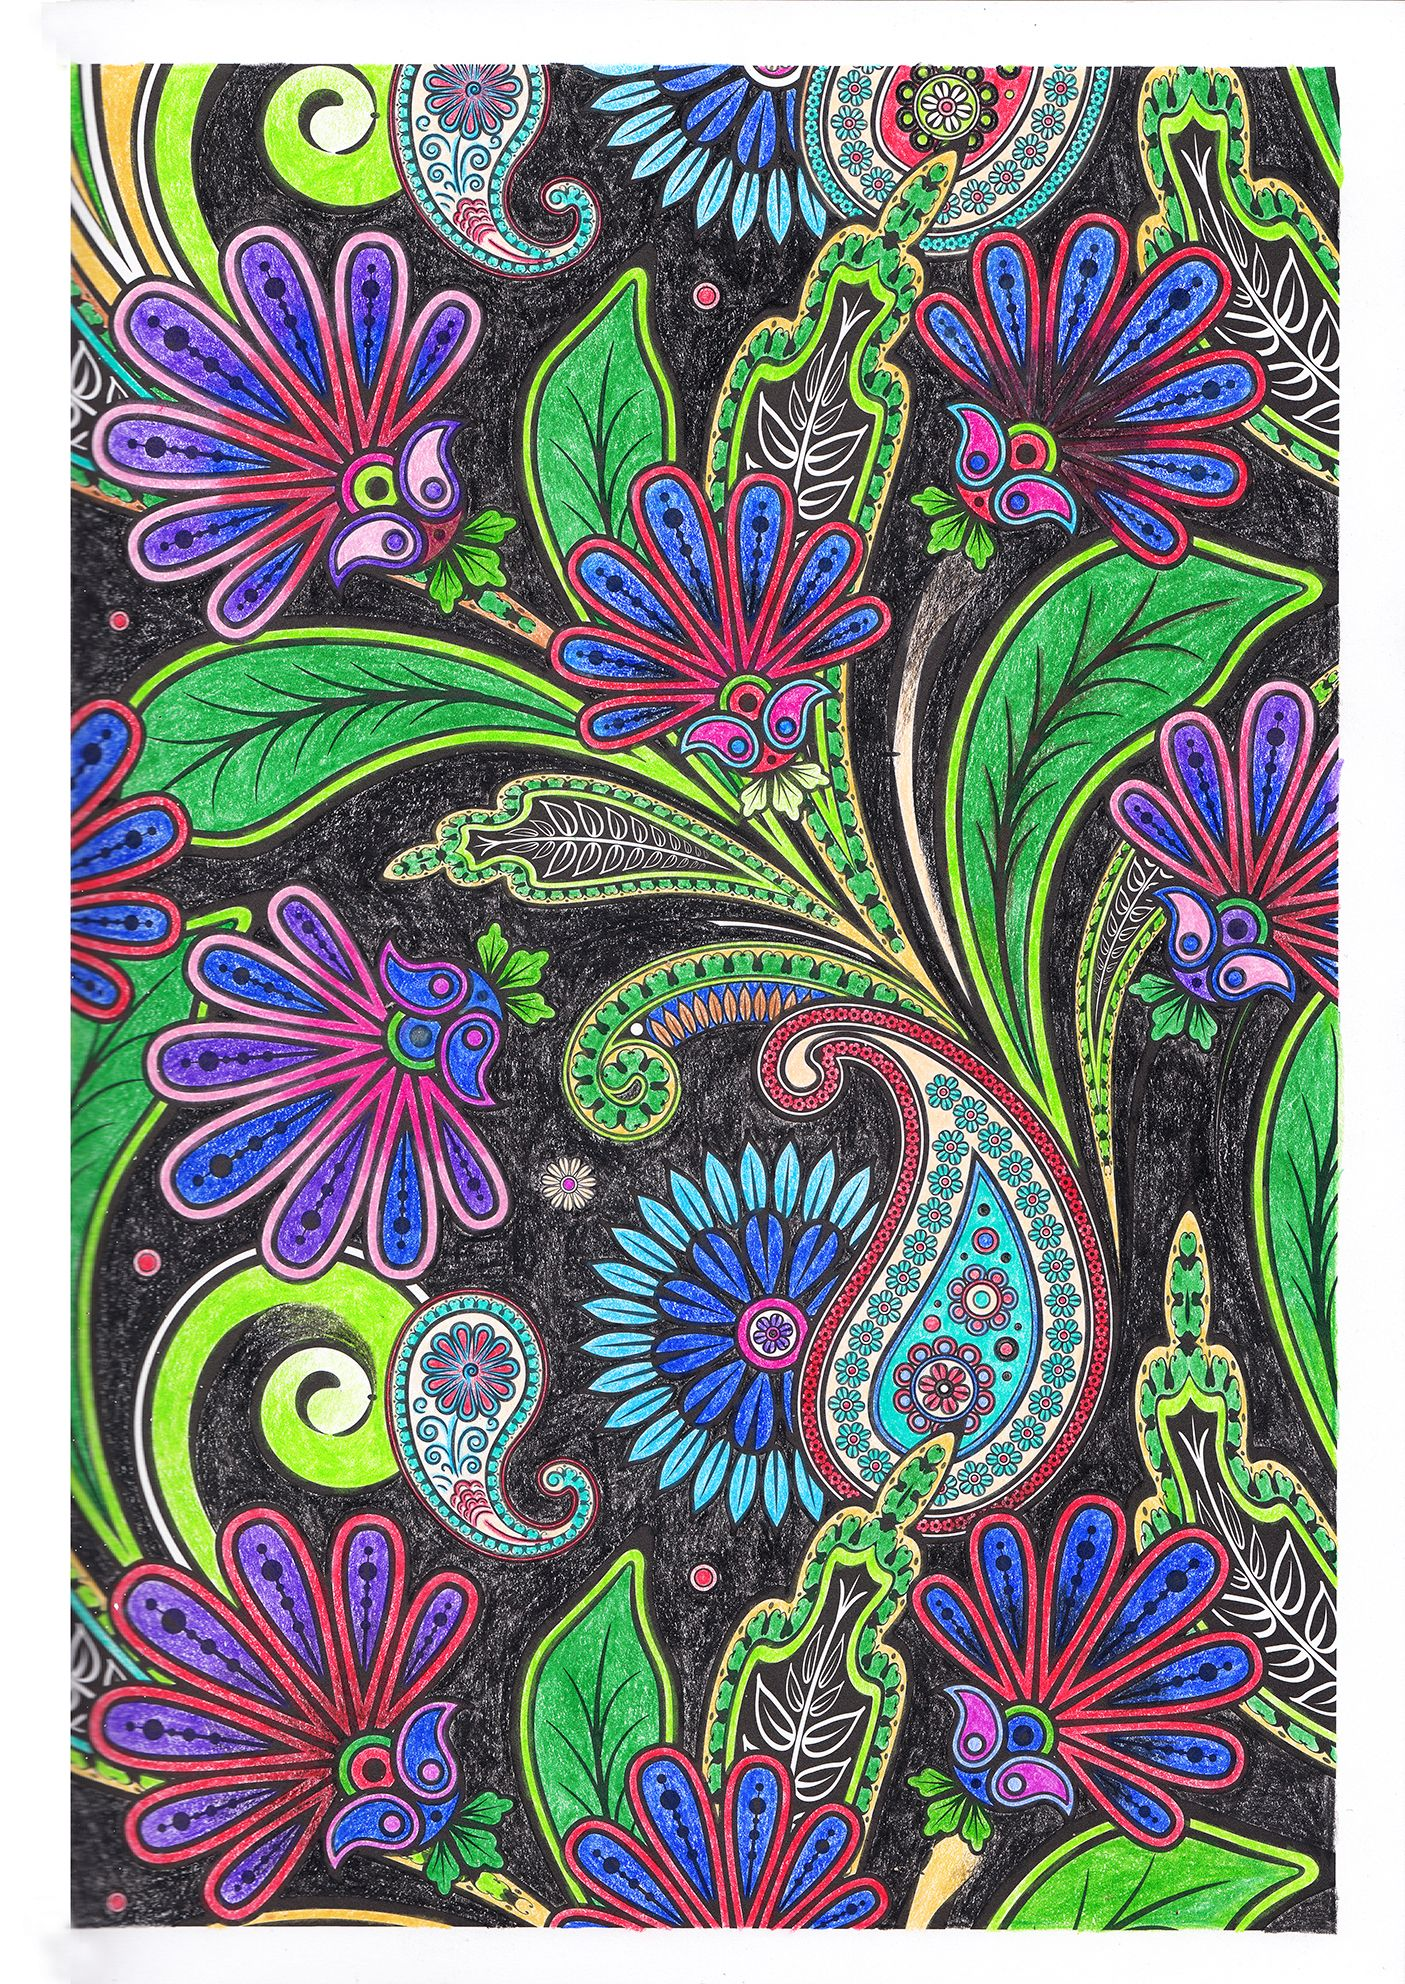 Colouring Pages For Adults Flowers On Black Background By Sandrakz Flowers Black Background Colorful Backgrounds Trendy Flowers